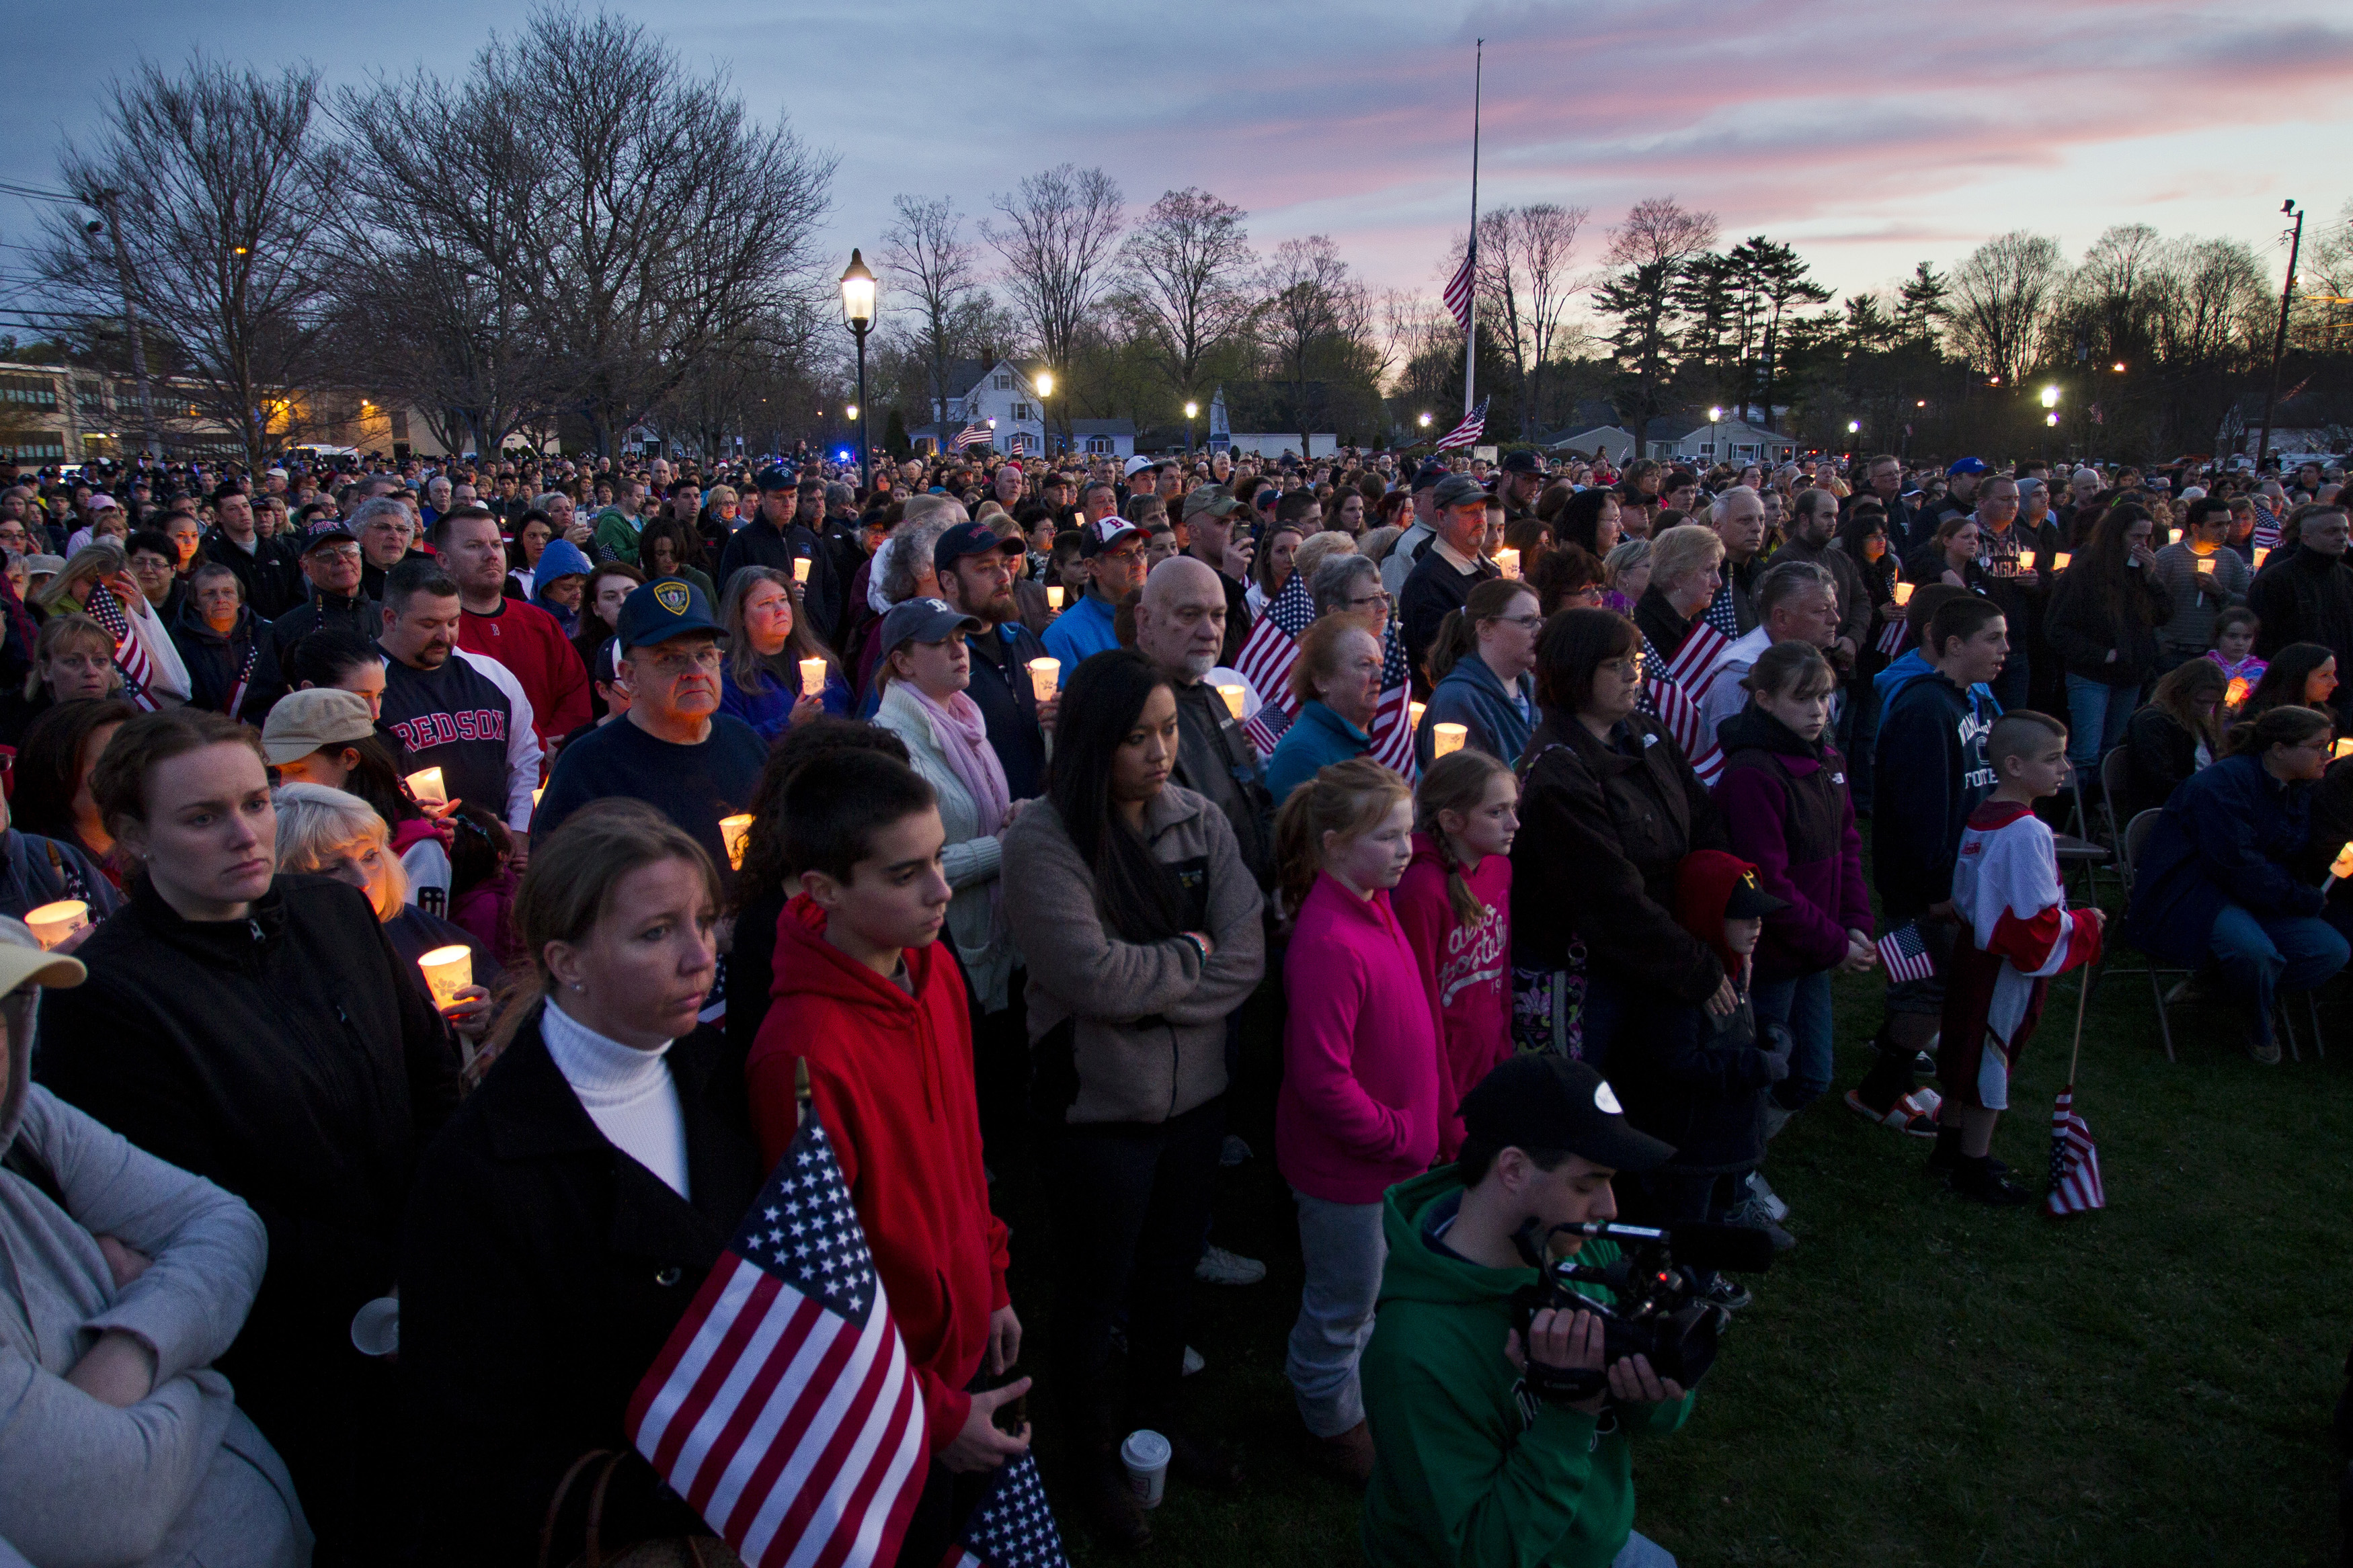 FILE PHOTO: People hold candles during a vigil at the Town Common in Wilmington, Massachusetts, April 20, 2013. REUTERS/Dominick Reuter